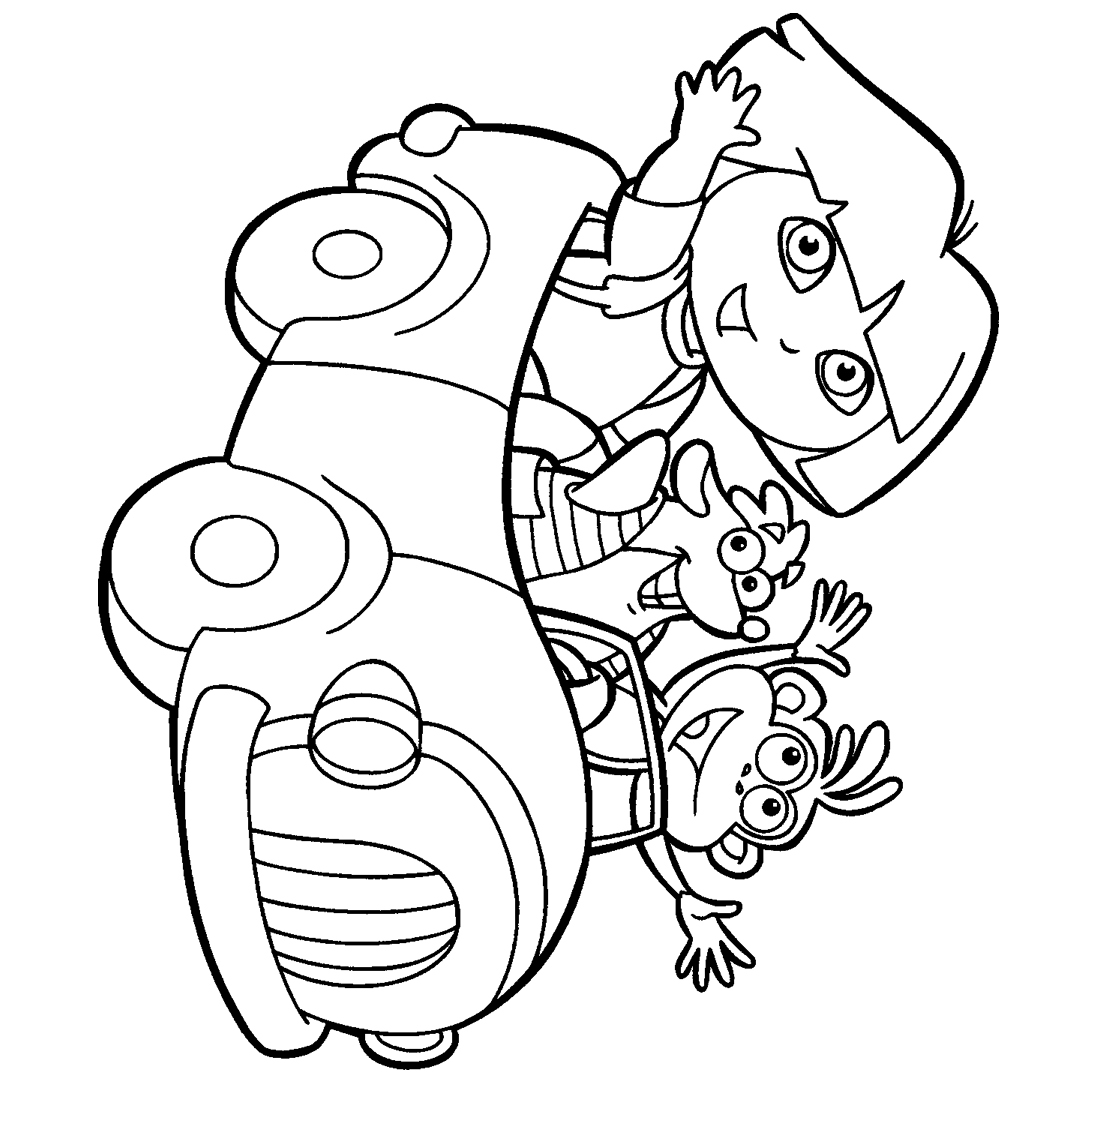 cool coloring pictures 16 cool coloring pages of designs images cool geometric coloring cool pictures